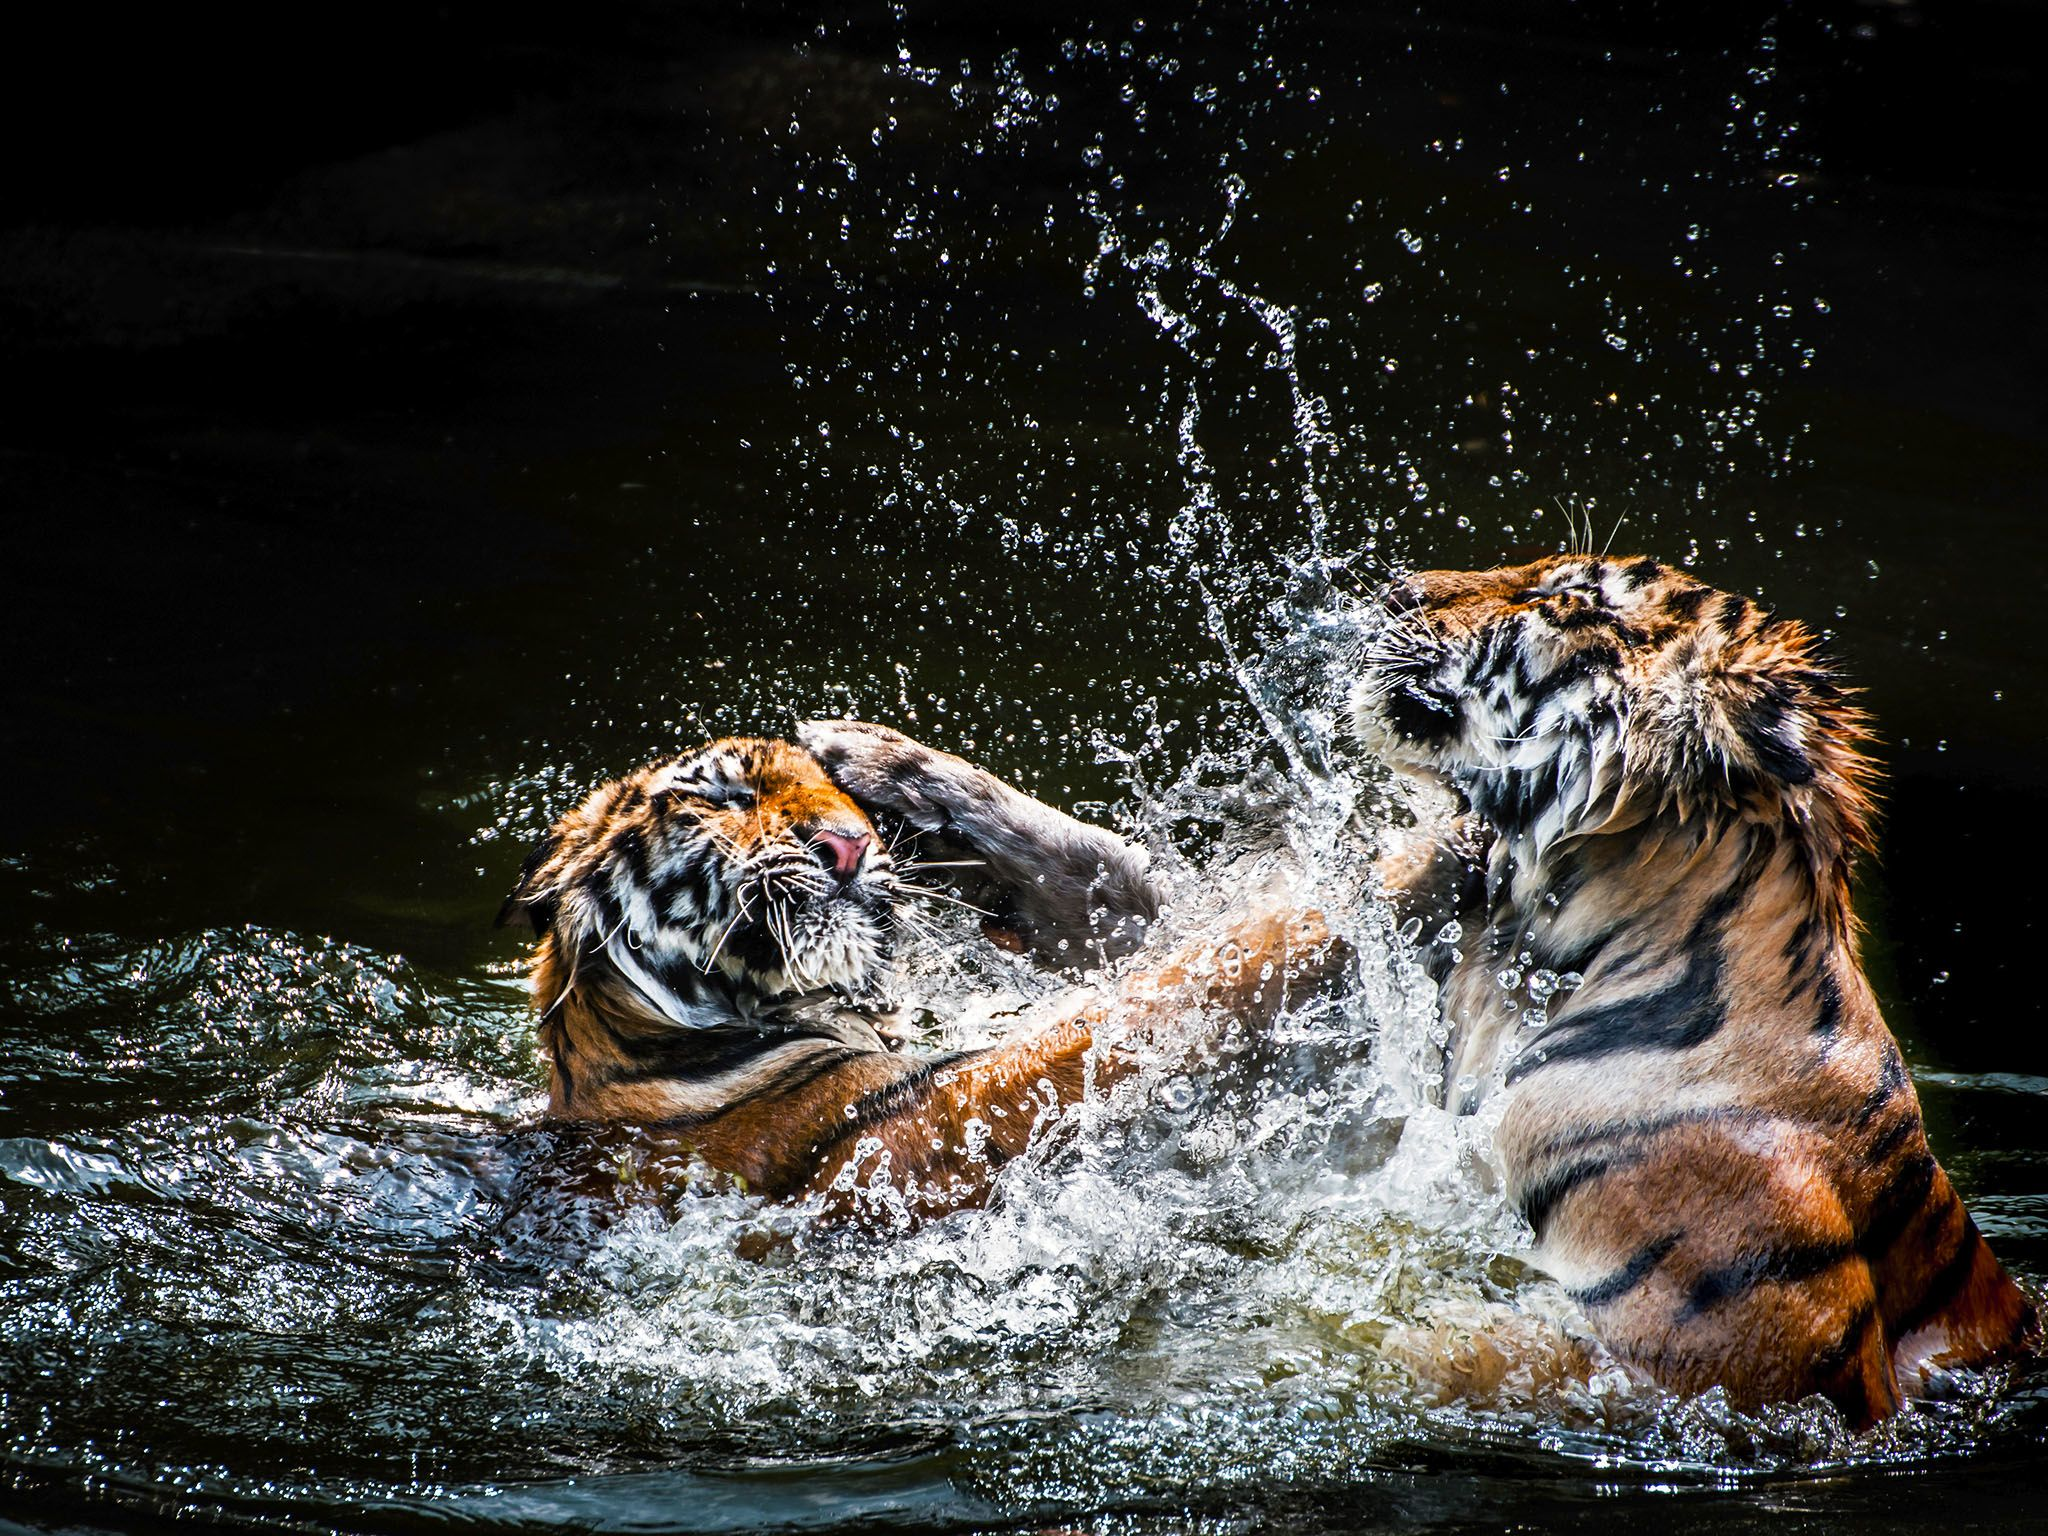 Tigers wrestle in the water. Tigers usually live 8 to 10 years in the wild. This image is from... [Foto del día - septiembre 2015]